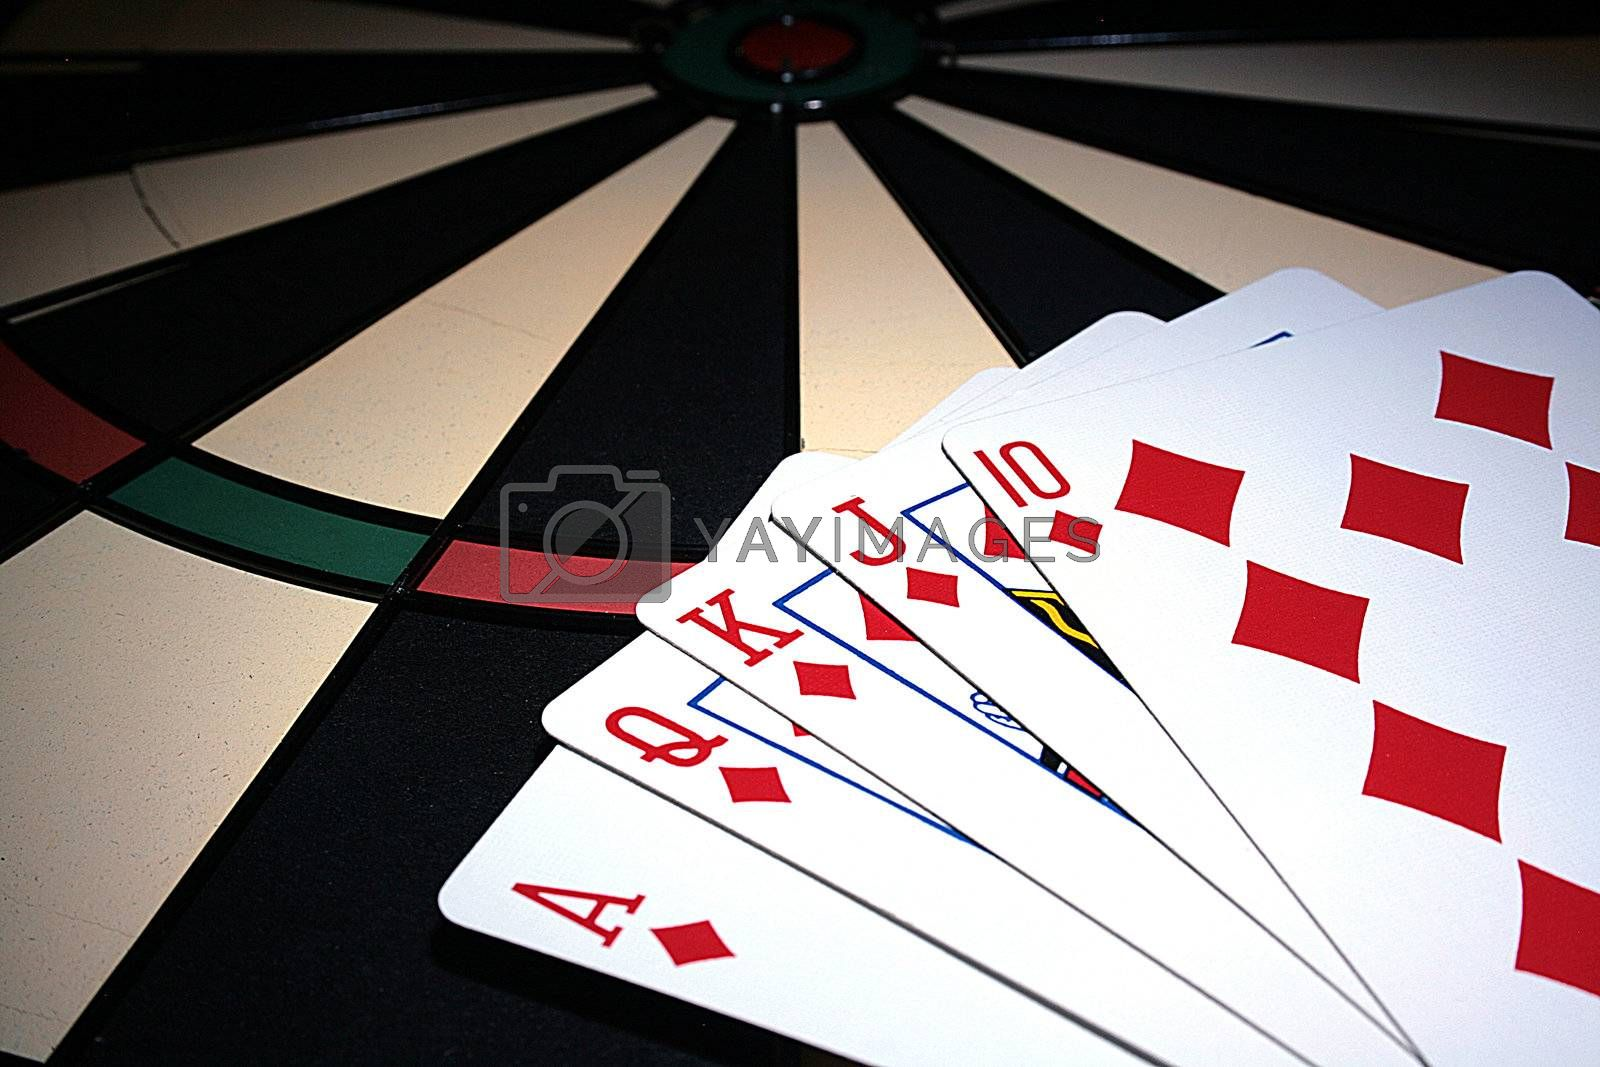 Playing cards on a board for game in a darts.